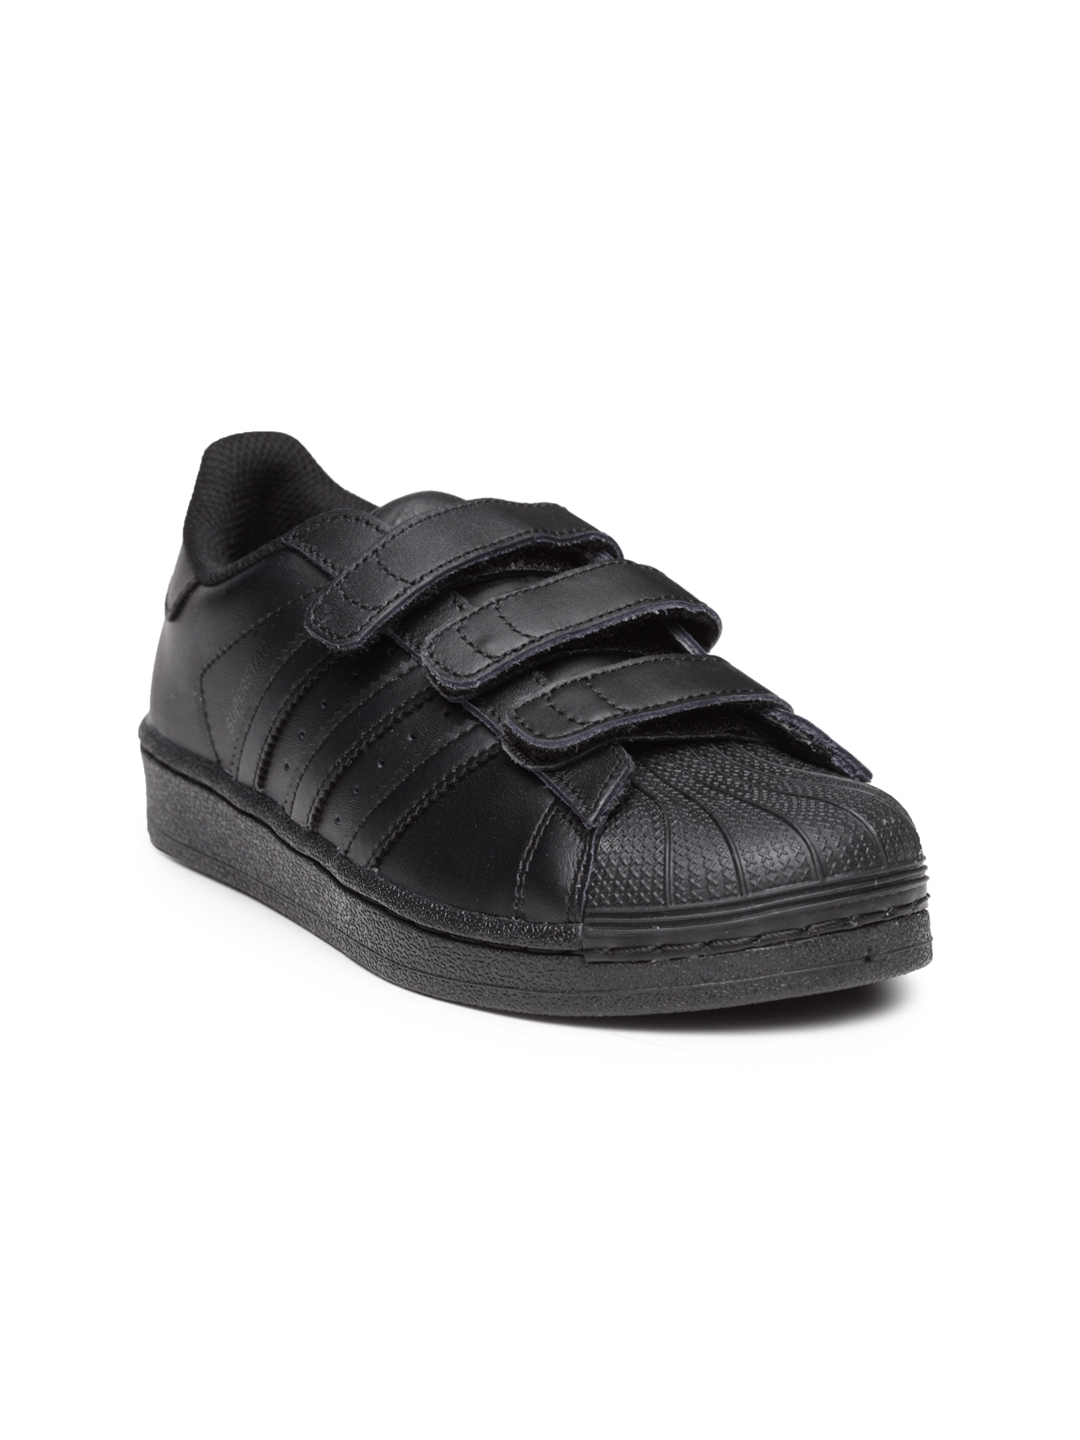 low priced 98366 1628d ADIDAS Originals Kids Black Superstar Foundation CF C Sneakers